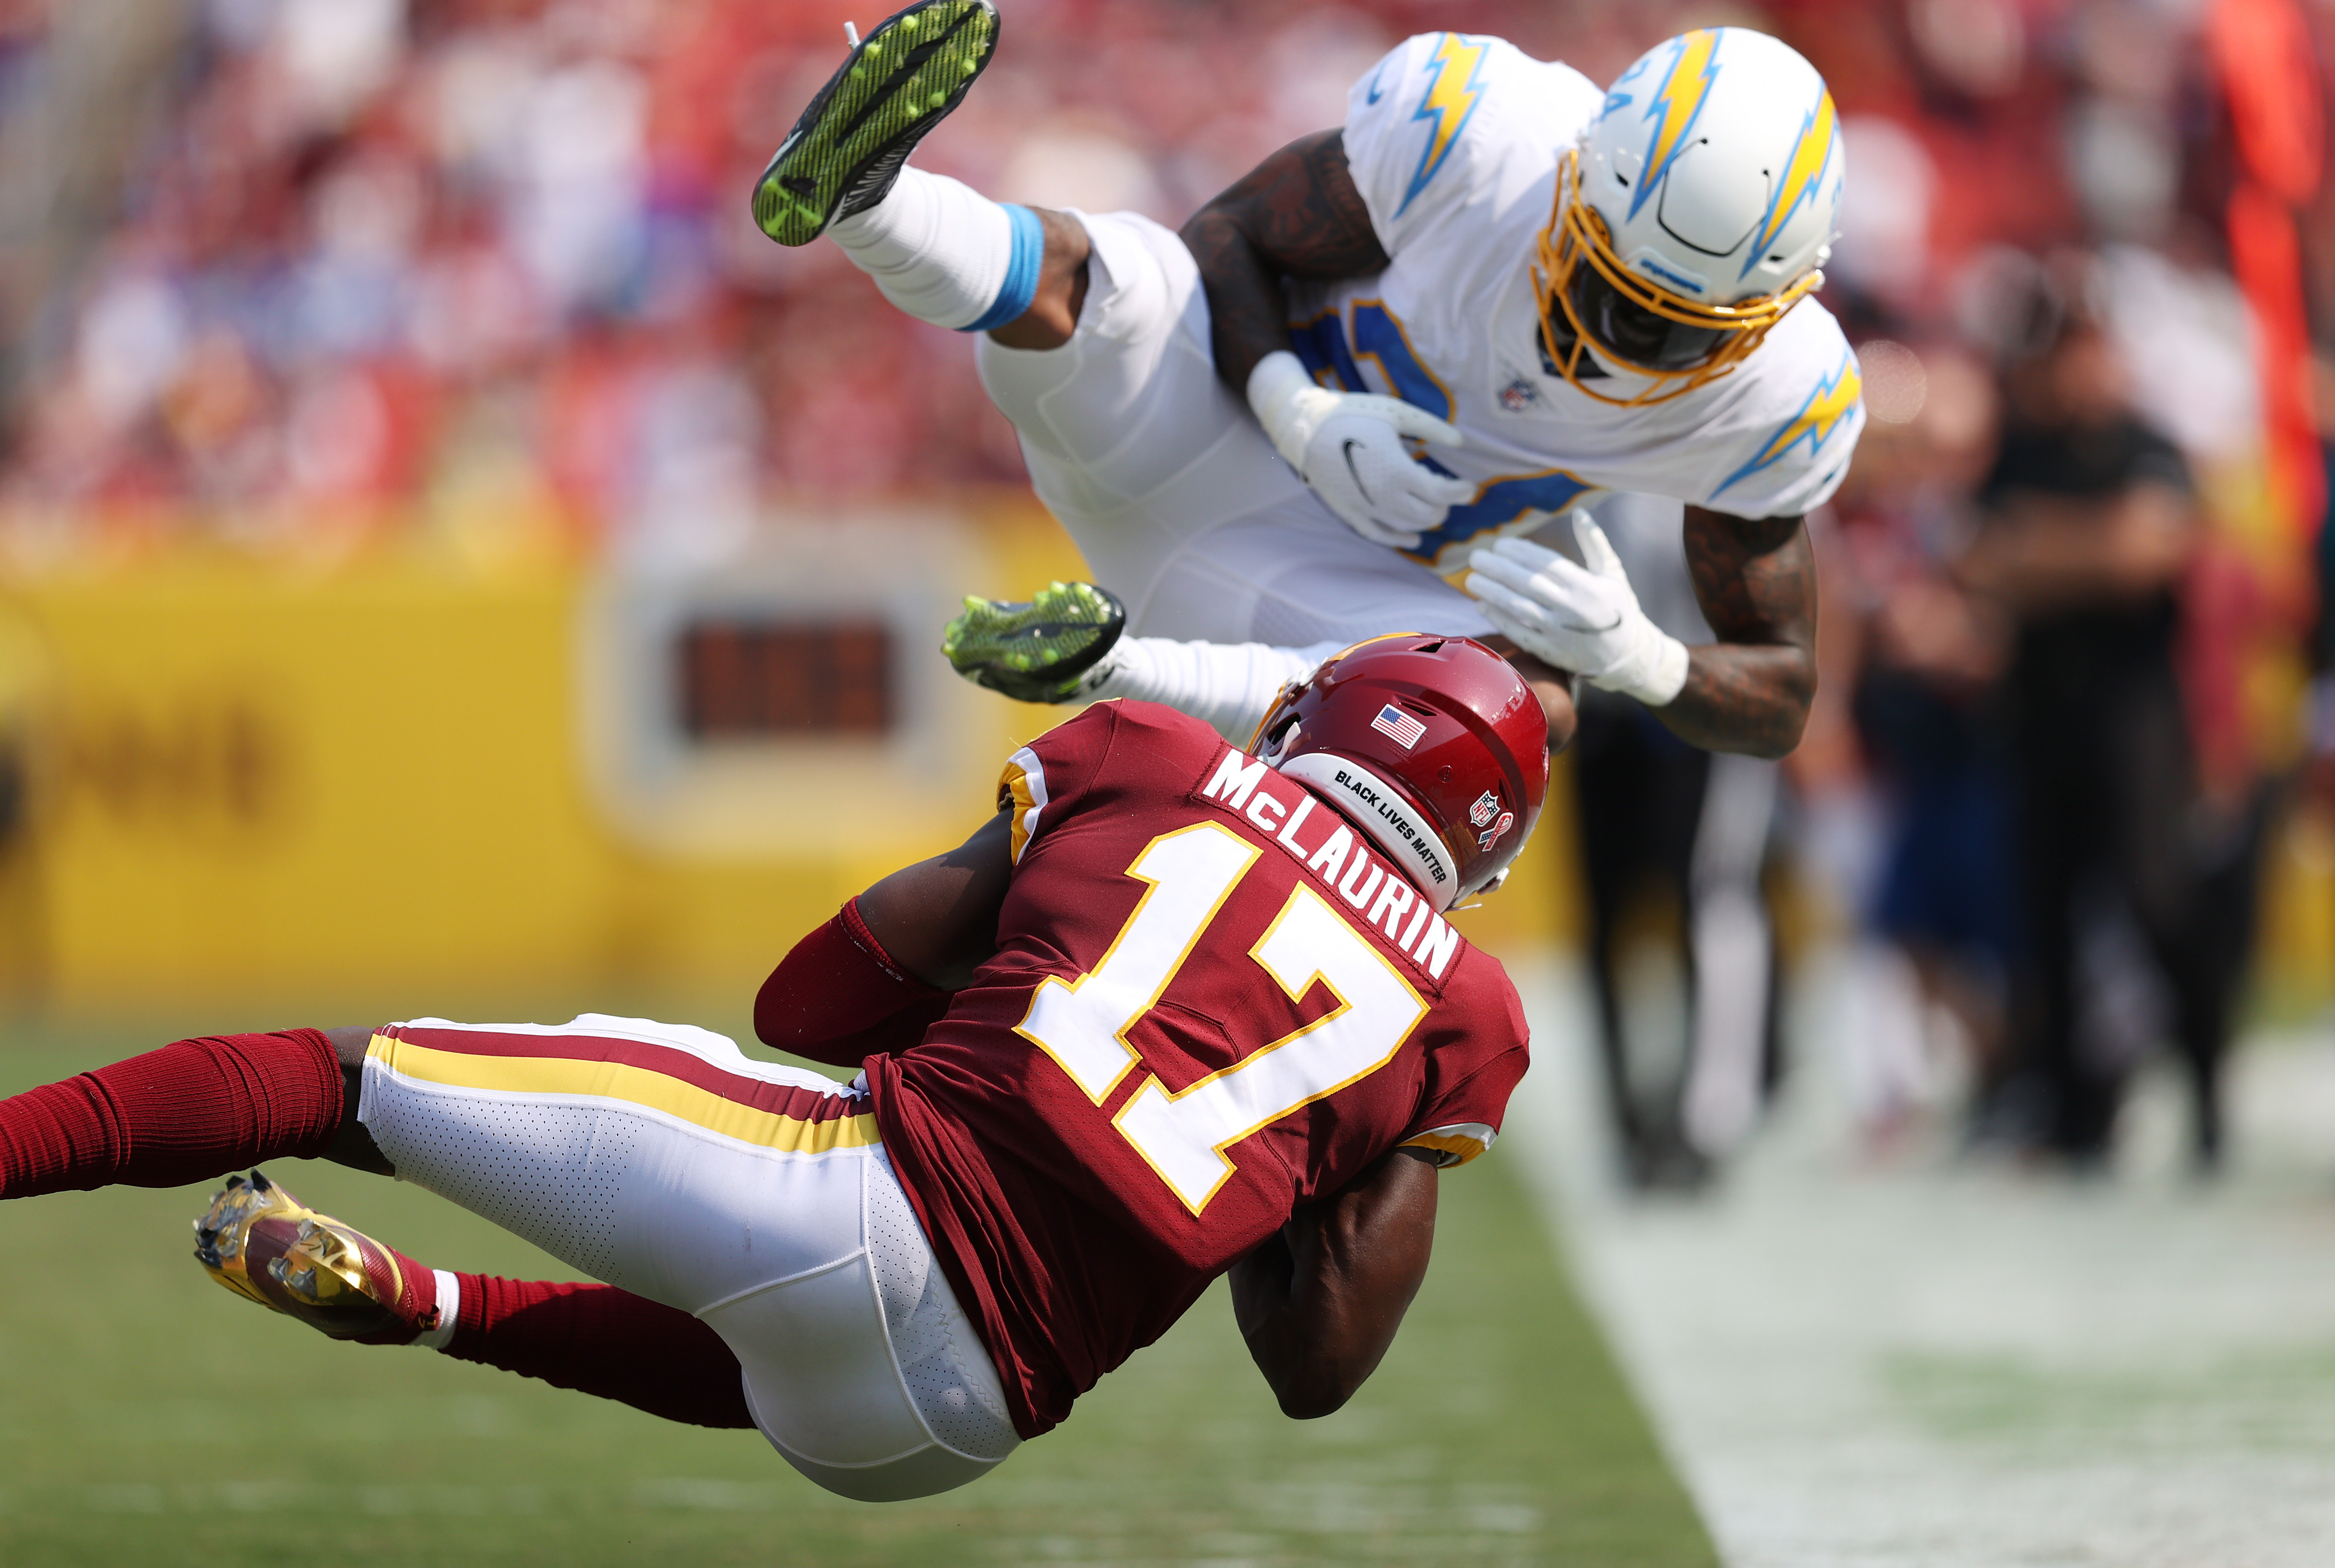 Terry McLaurin #17 of the Washington Football Team makes a catch against the Los Angeles Chargers during the fourth quarter at FedExField on September 12, 2021 in Landover, Maryland.